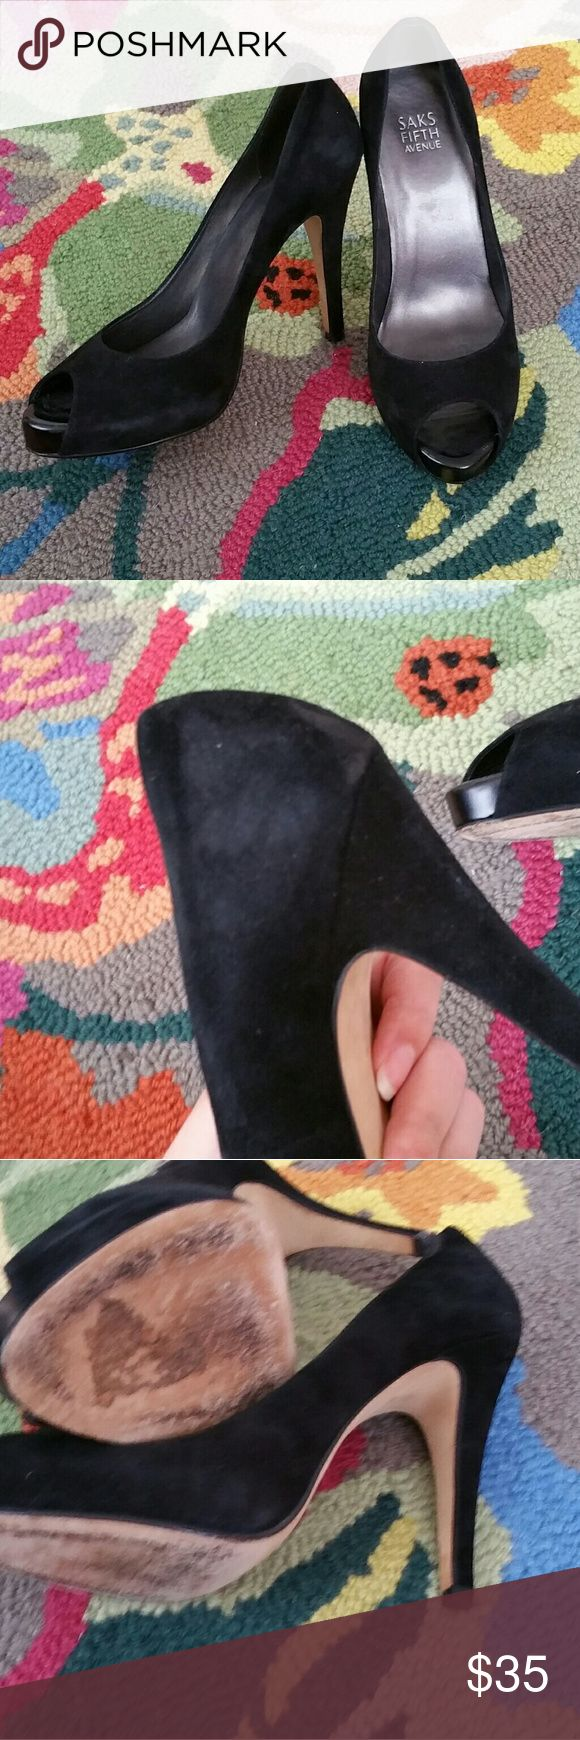 """Saks Fifth Avenue Black Suede High Heels I love these heels, they are so classic. But alas, they are definitely a true 9. I am an 8.5 and after literally only 1 wear with them slipping off constantly, they went back to my closet. I am the original purchaser, this was bought in store. I don't know if they are real suede, or just """"suede like"""" but they are super soft to the touch. Comes with original heel caps. In very good used condition. Saks Fifth Avenue Shoes Heels"""